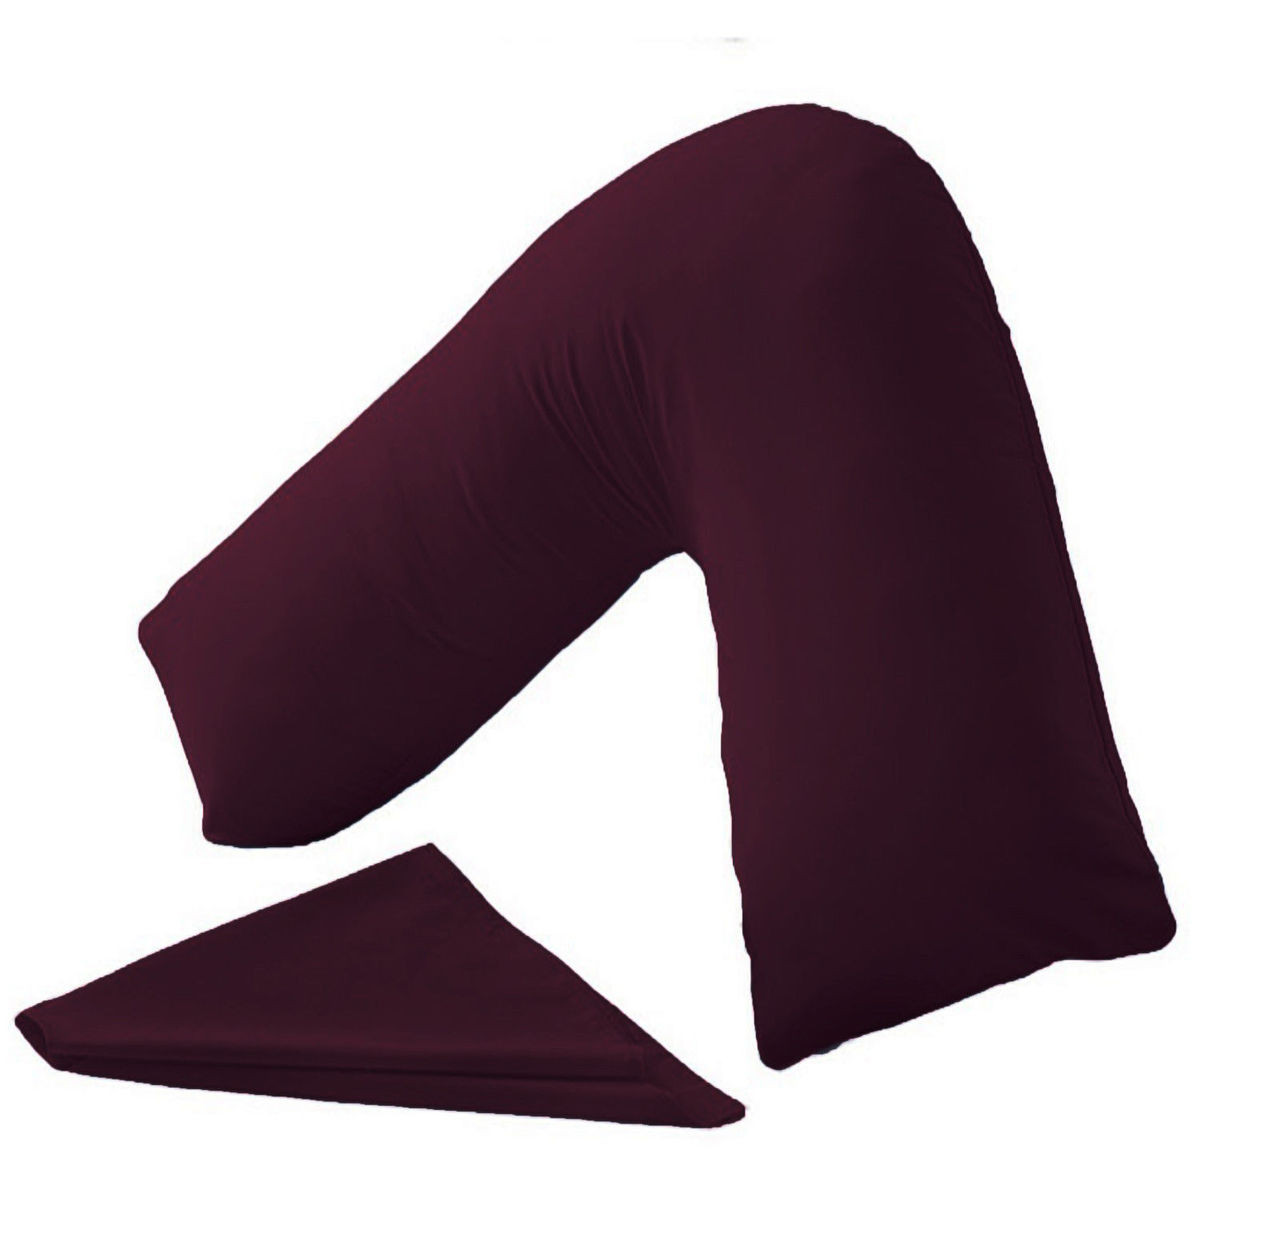 V Shaped Pillow And Pillowcase (Plum